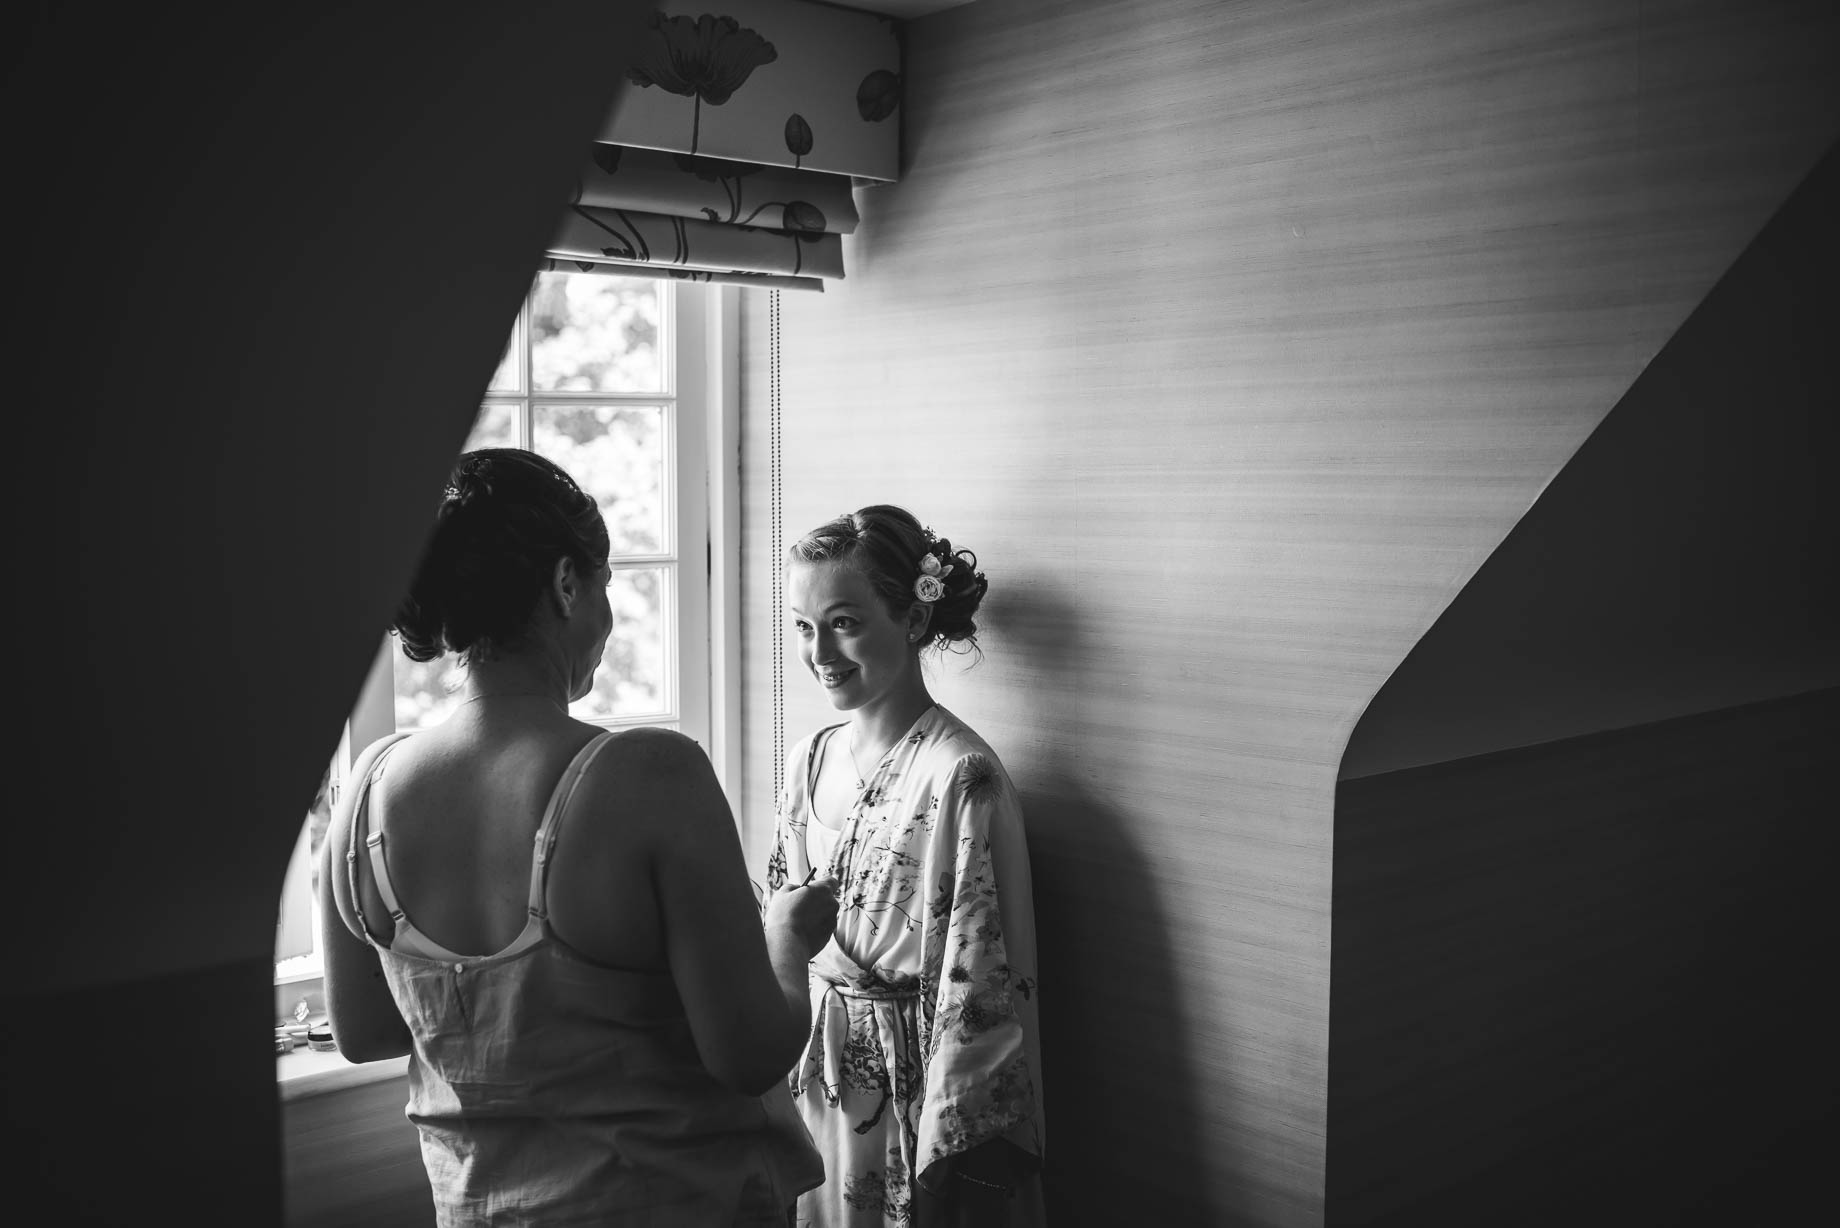 Luton Hoo wedding photography by Guy Collier Photography - Lauren and Gem (36 of 178)